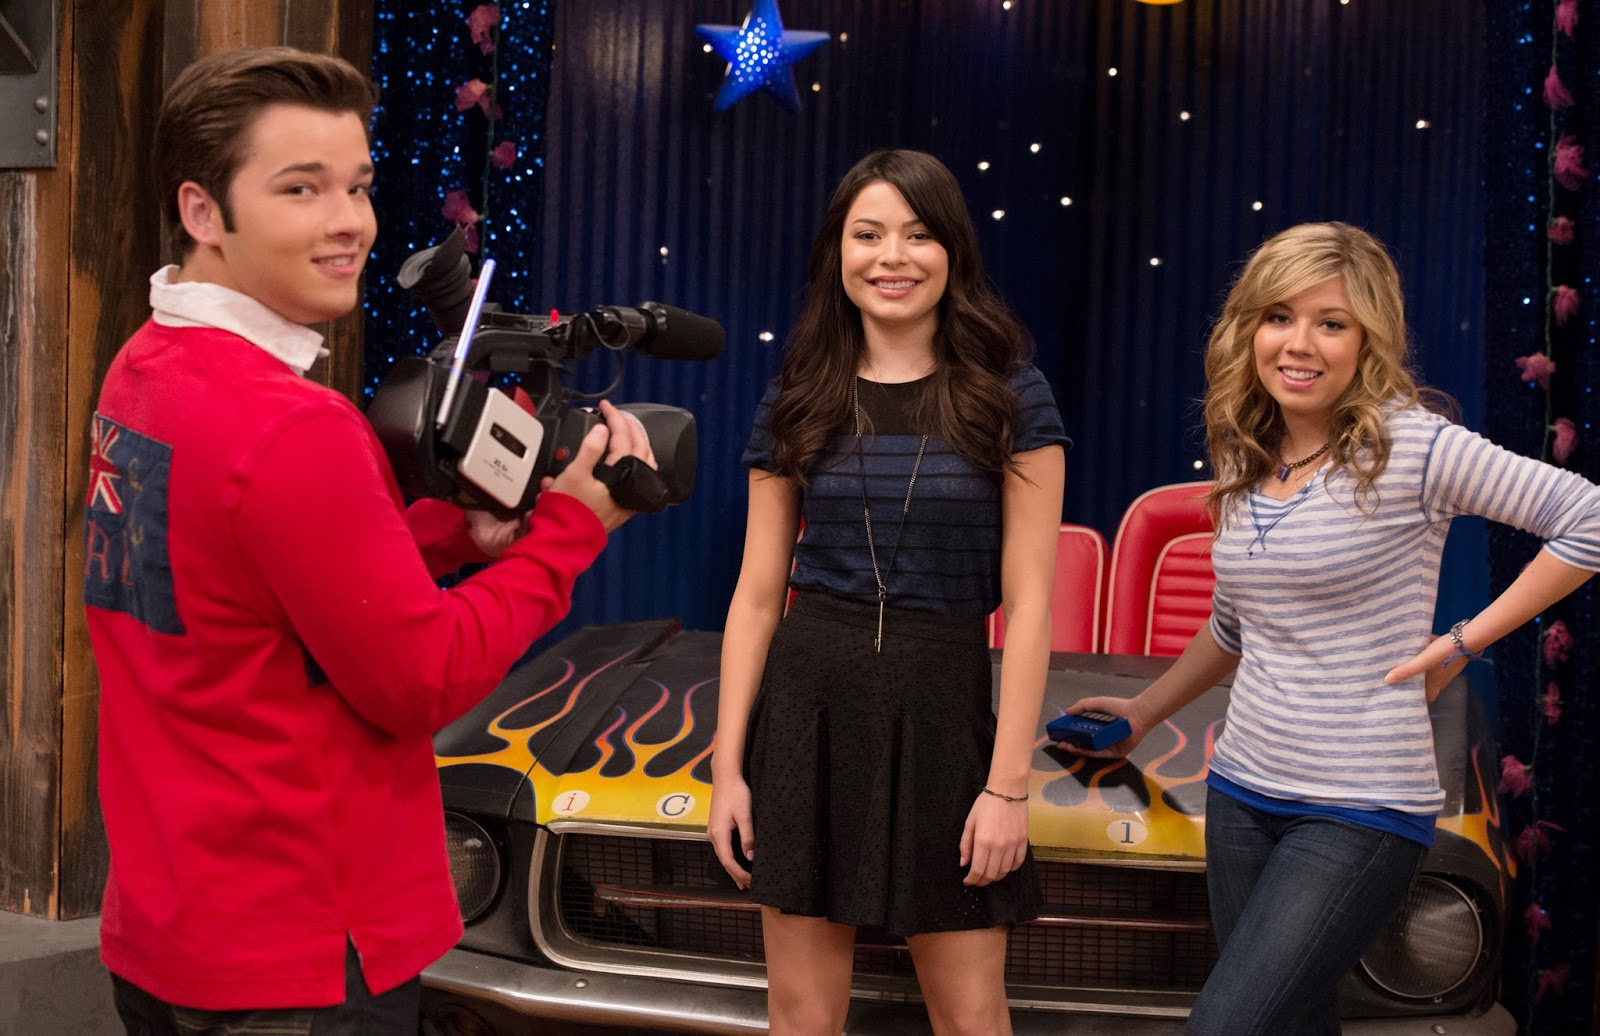 Jennette Mccurdy Is Like One Of My Best Friends And I See Jerry Trainor All The Time So I Think That That Would Be Really Fun